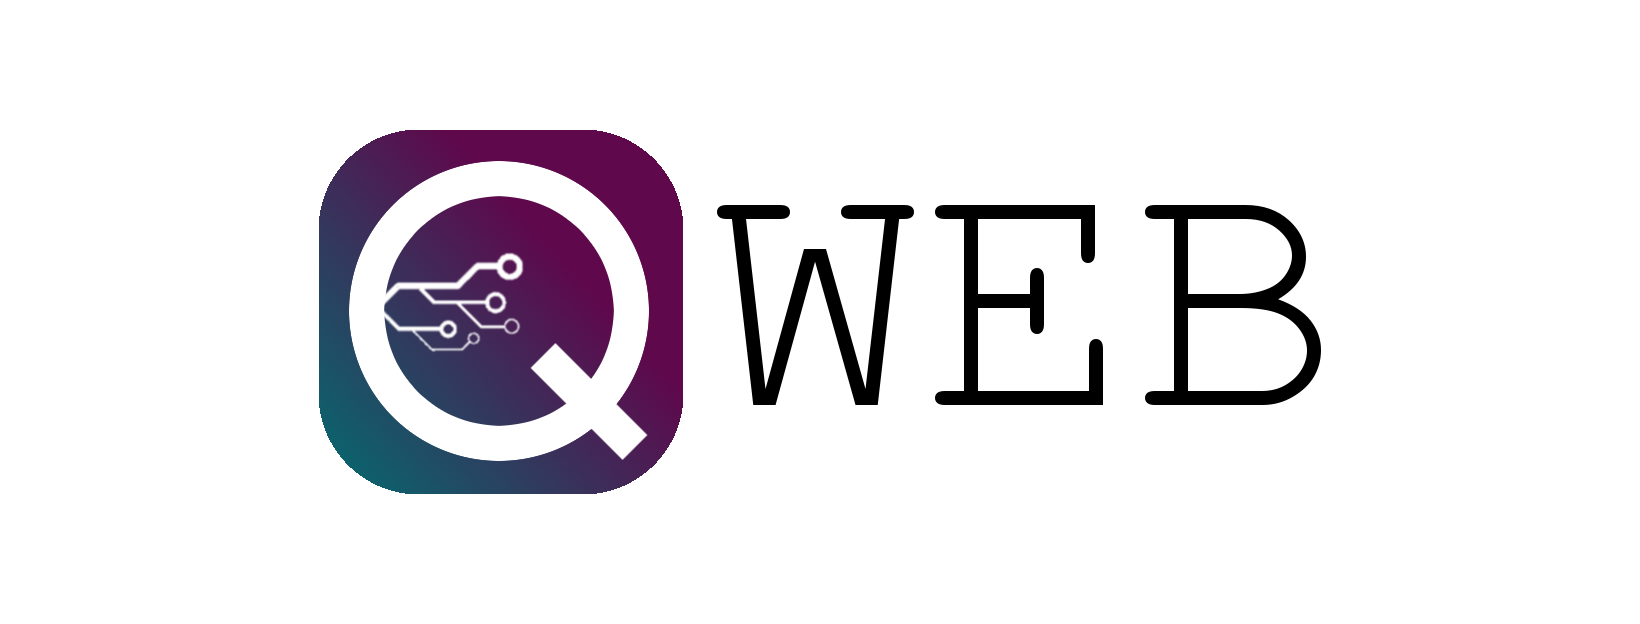 Queen's Web Development Club